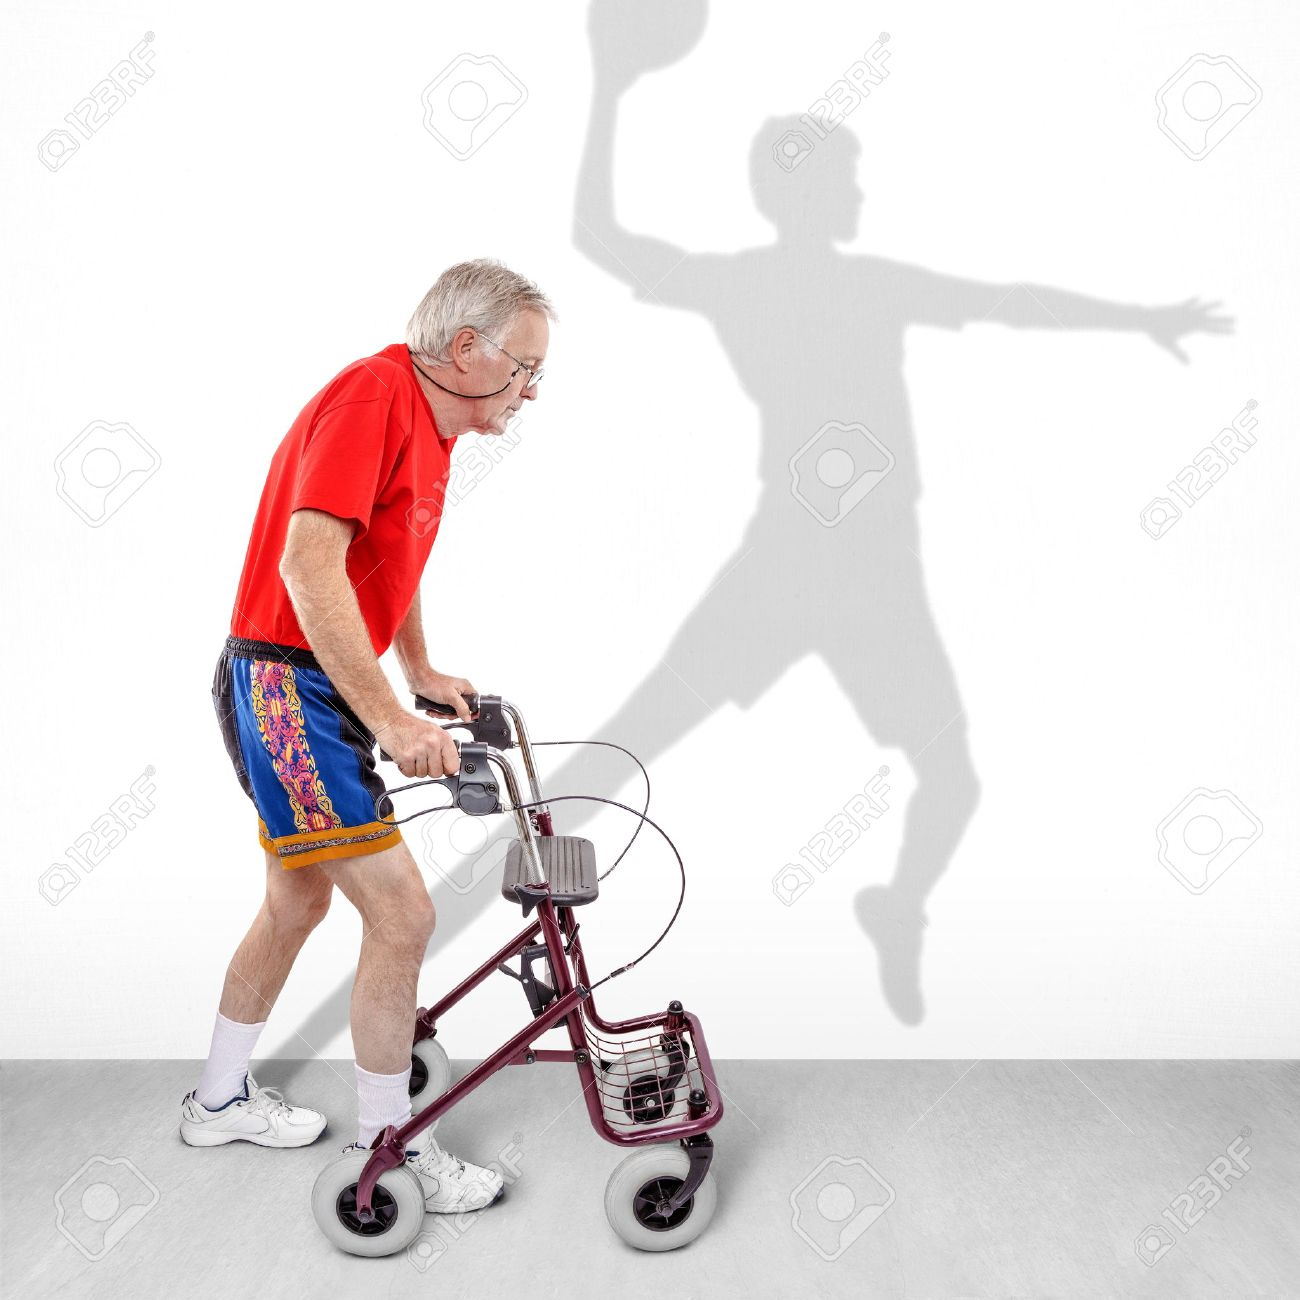 1300x1300 Rollator Walker Stock Photos Amp Pictures. Royalty Free Rollator